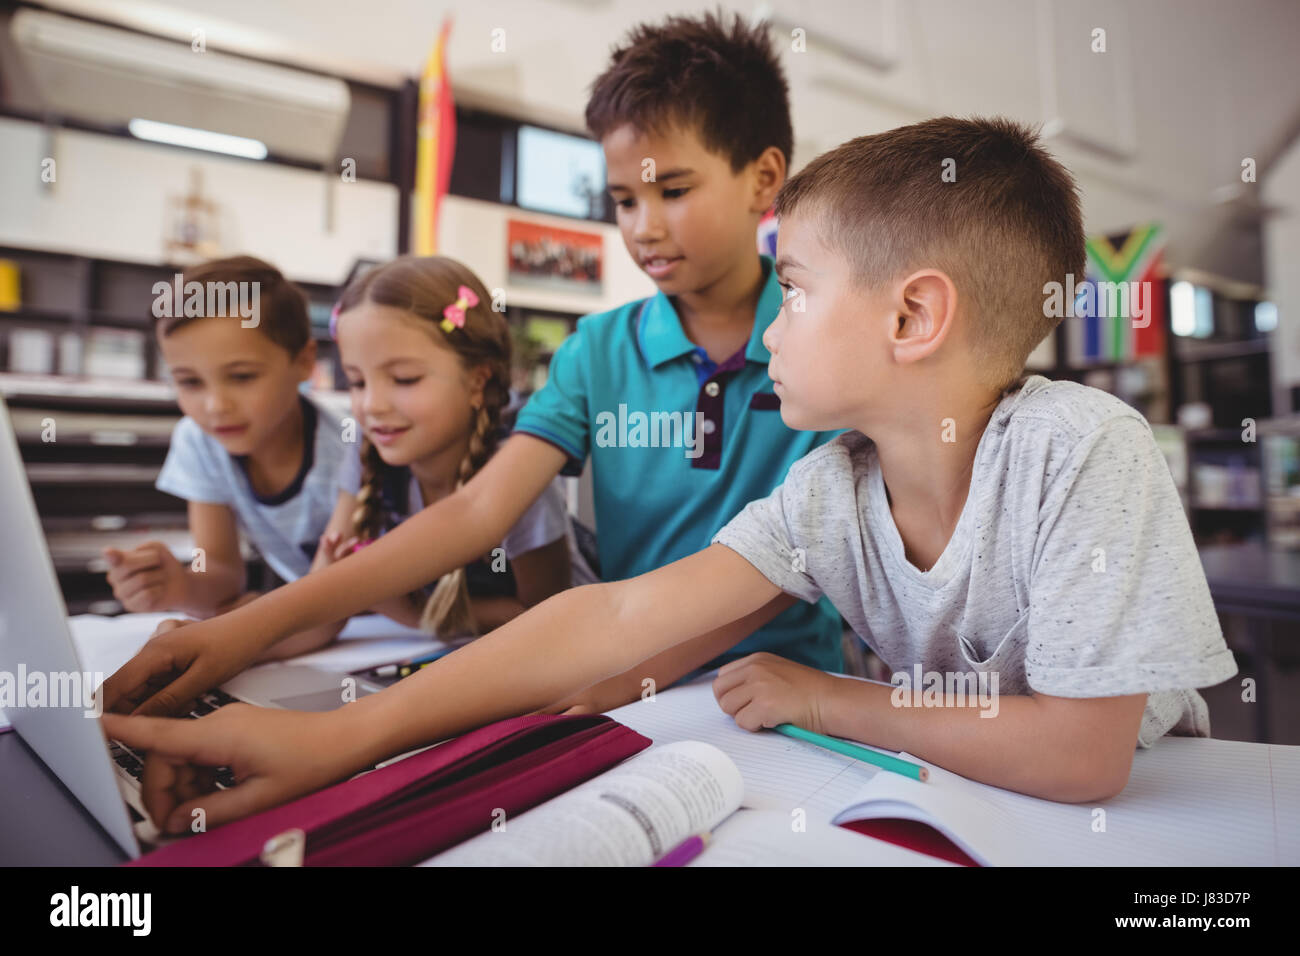 Attentive schoolkid using laptop in library at school - Stock Image